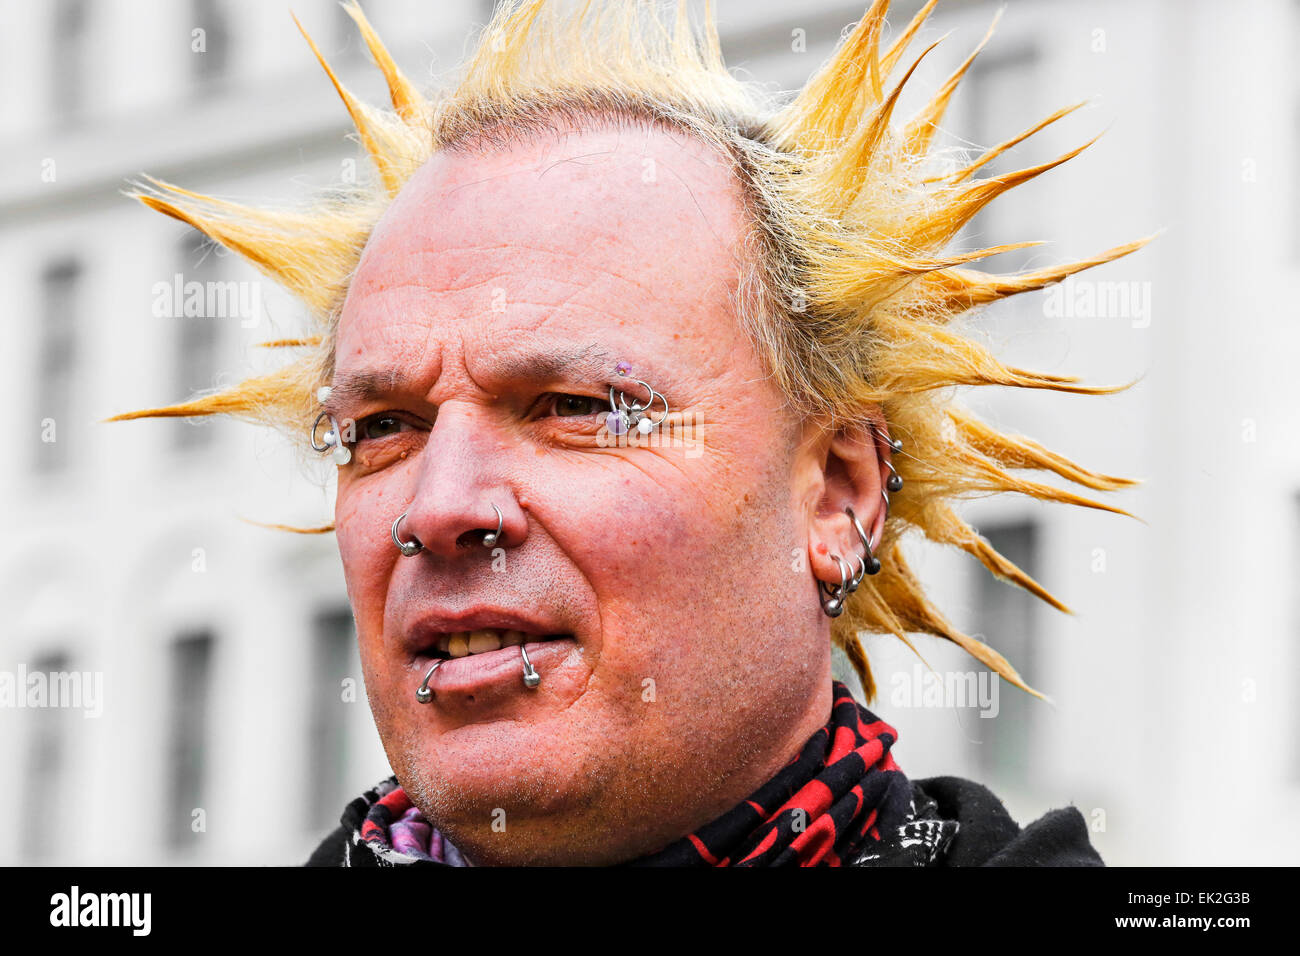 Man with punk haircut and face studs, Glasgow, Scotland, UK - Stock Image